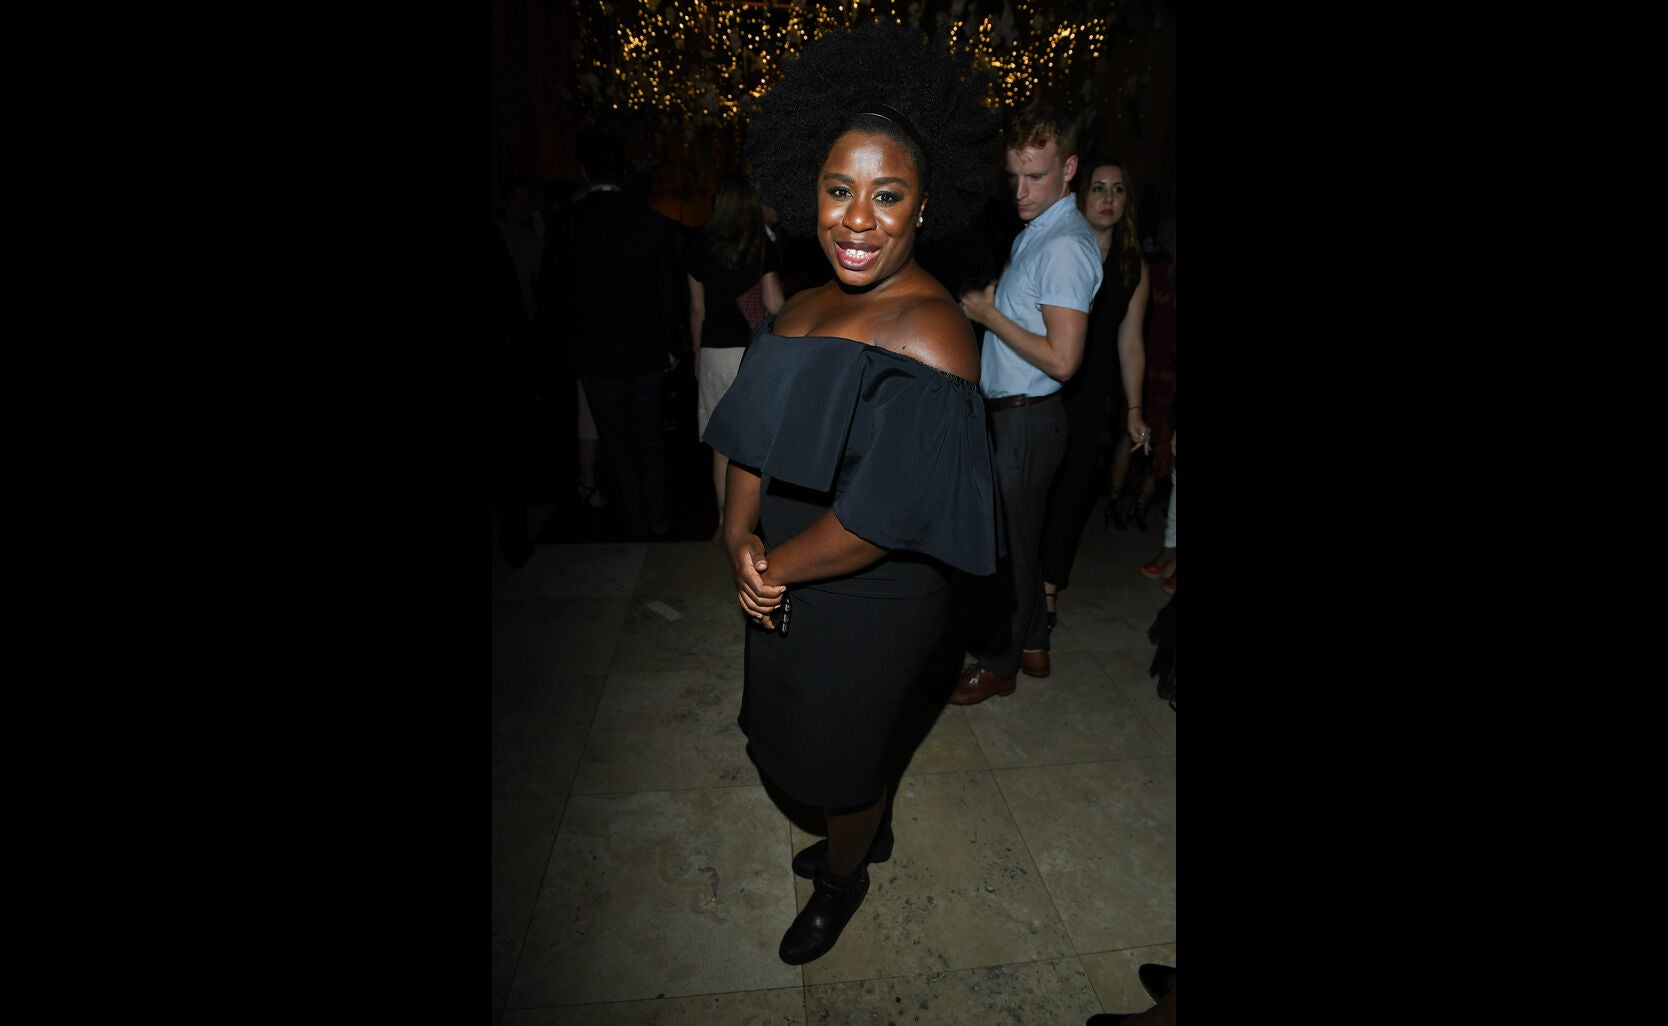 Golden Globe nominee Uzo Aduba  at the HFPA/In Style party, Toronto 2019=6